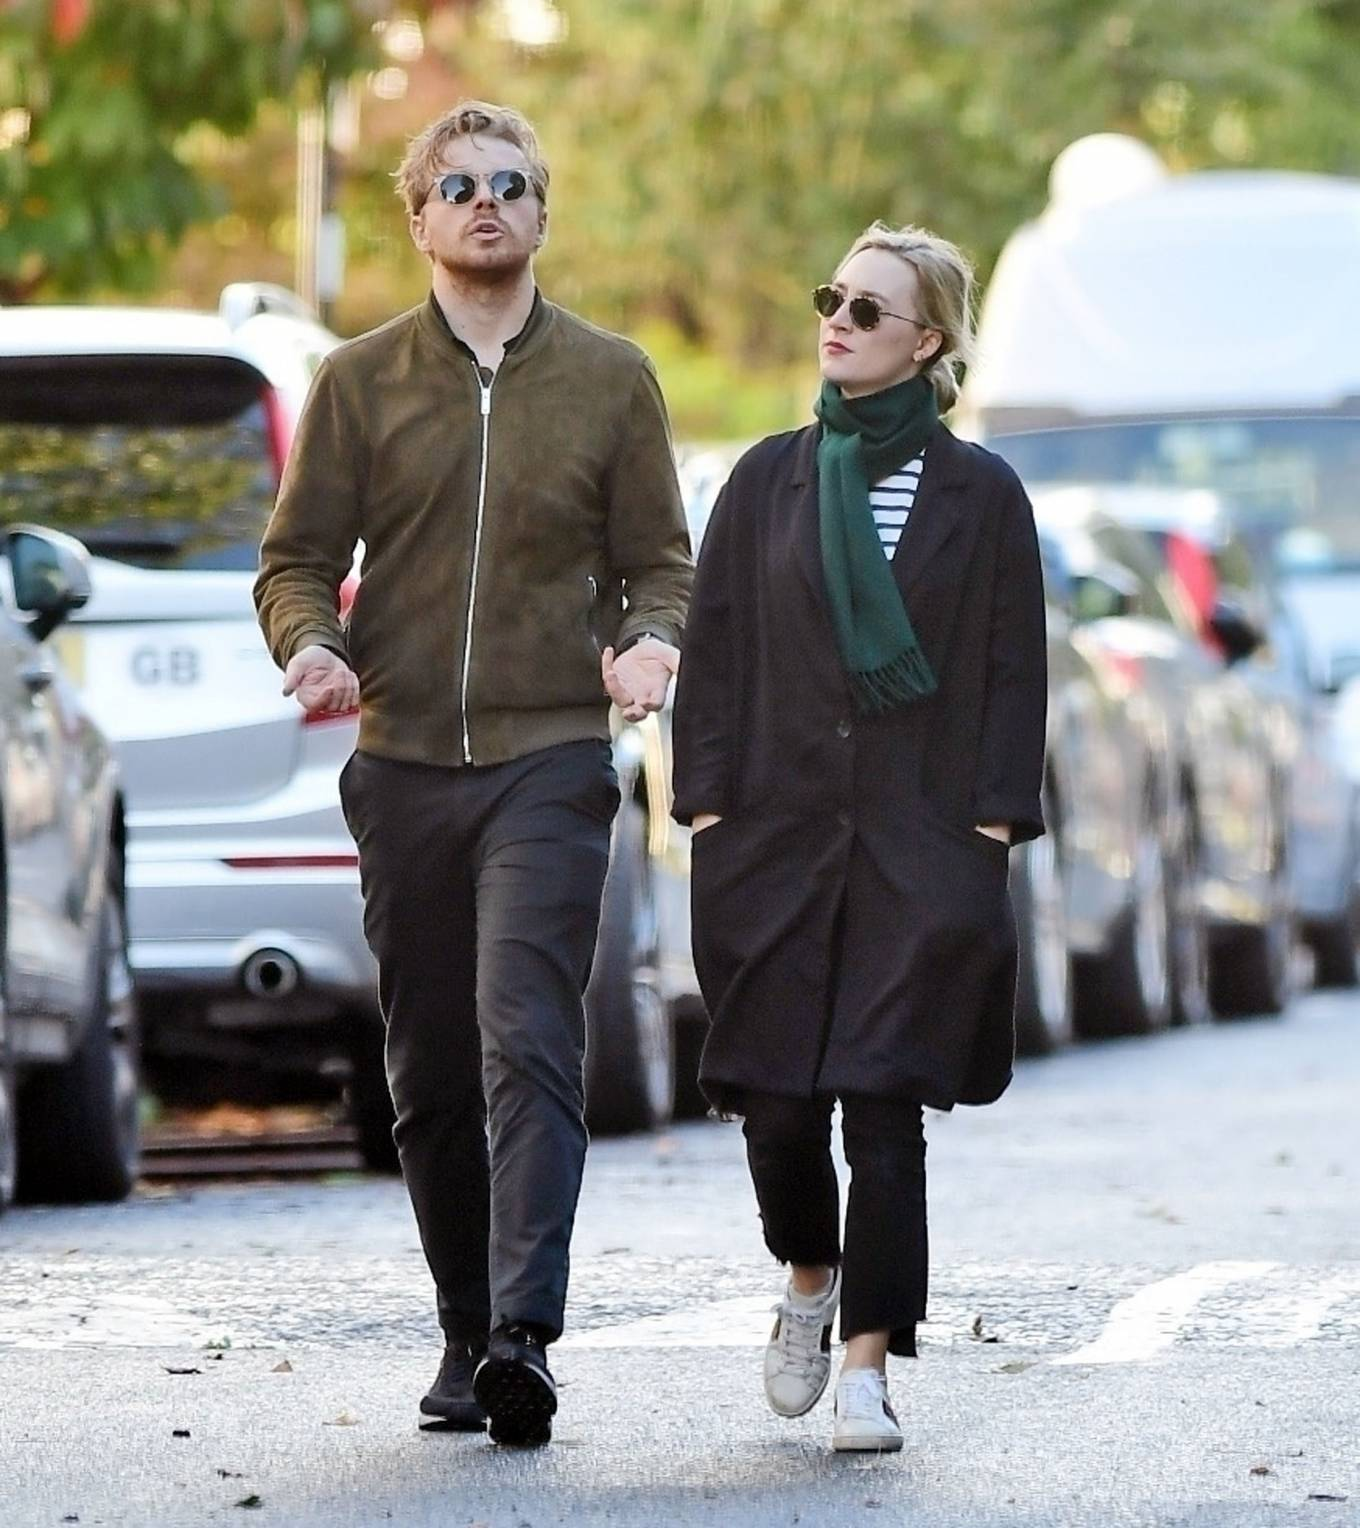 Saoirse Ronan - With Jack Lowden out in London